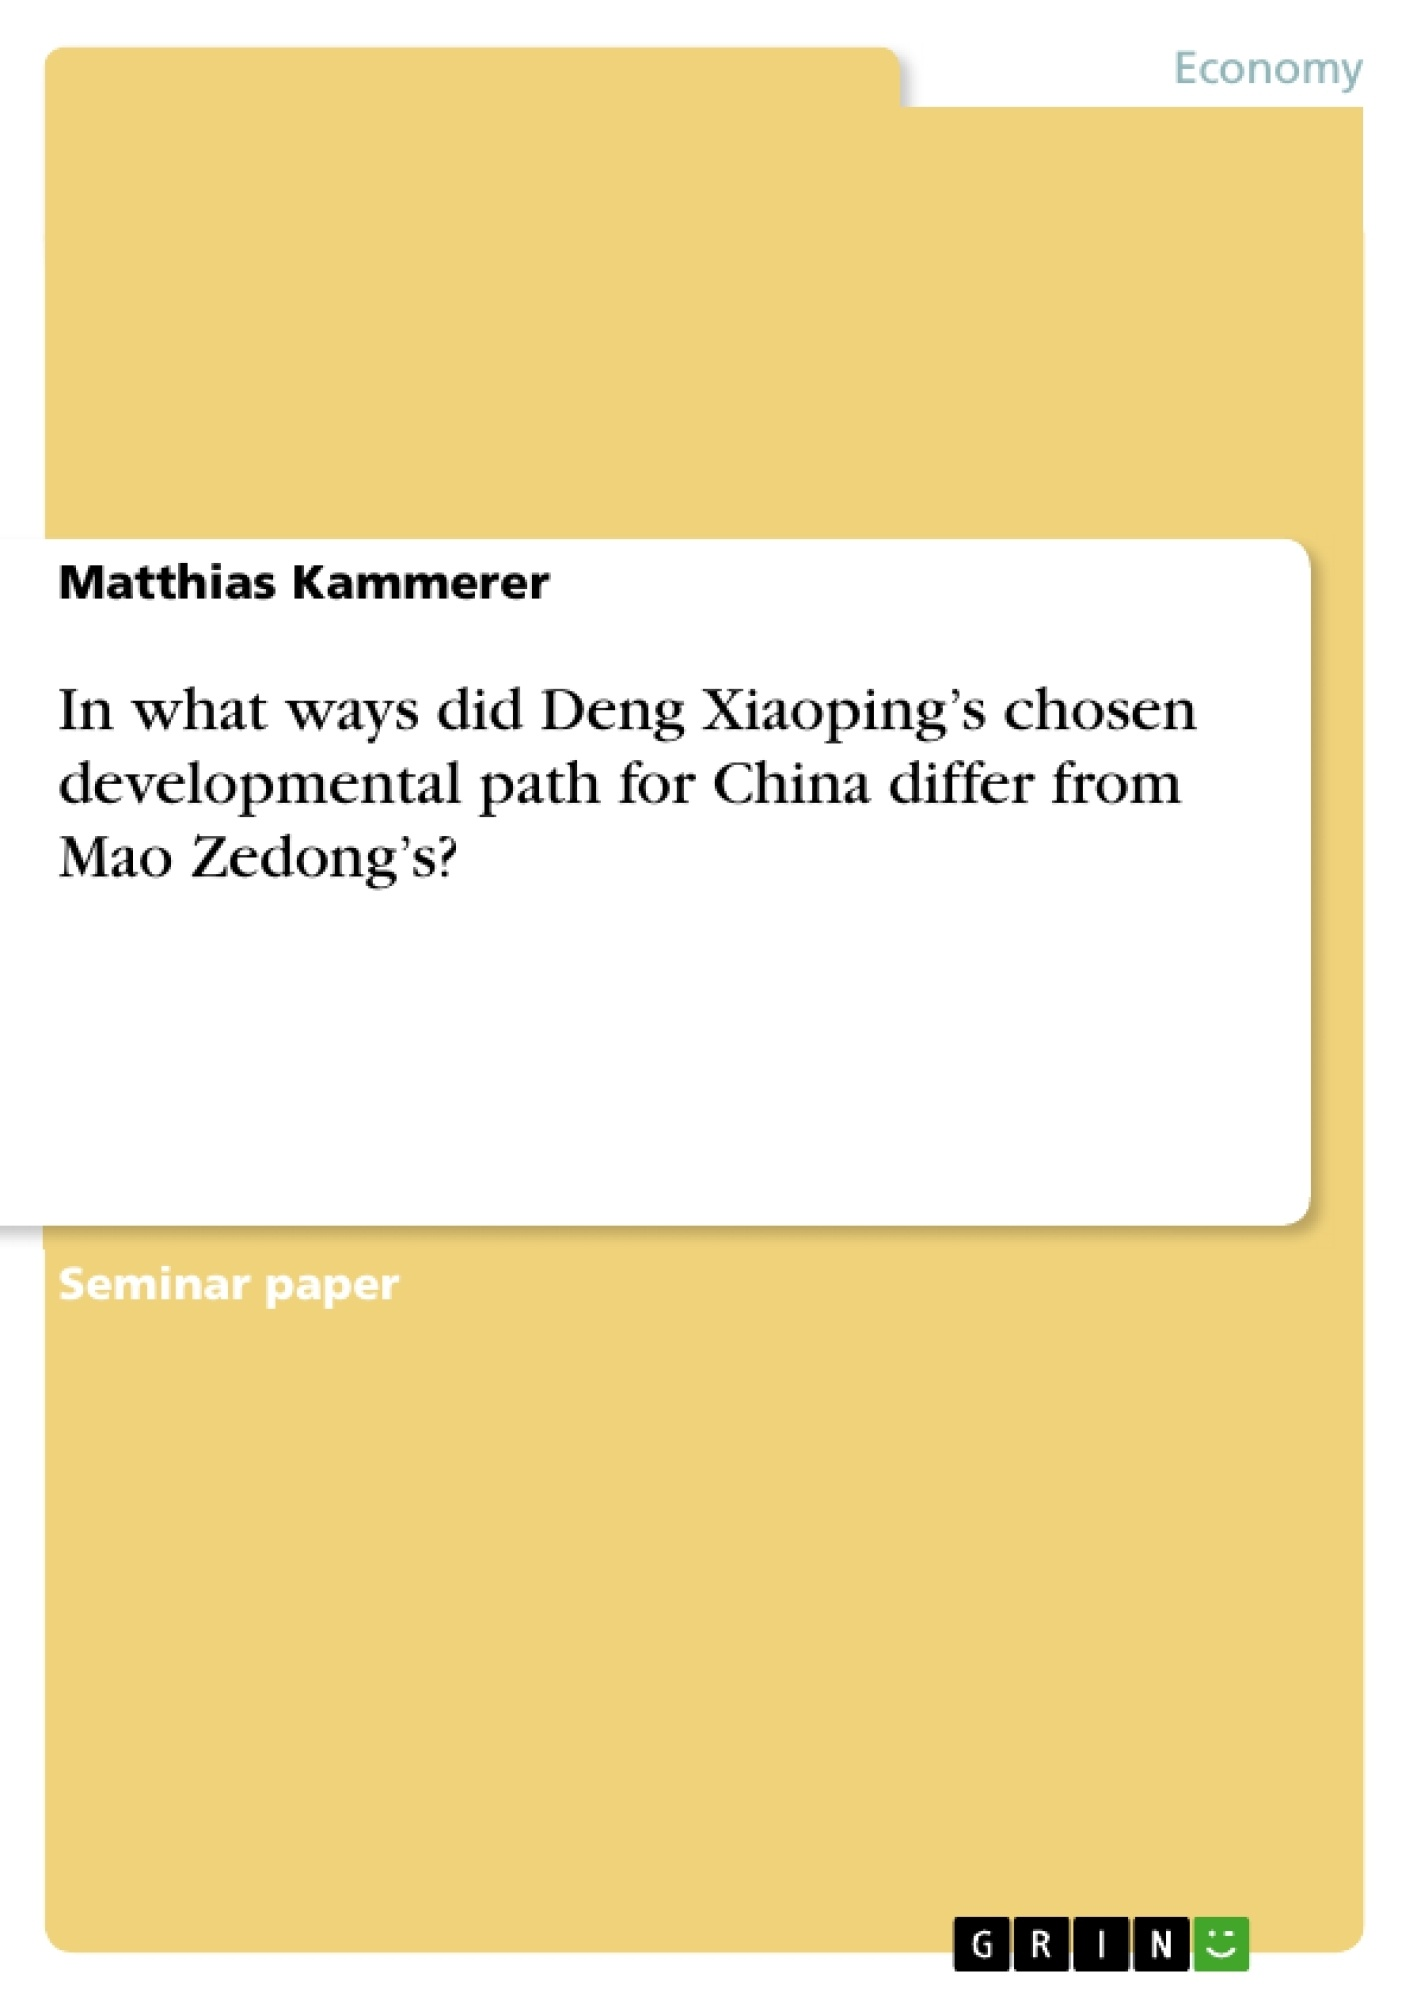 Title: In what ways did Deng Xiaoping's chosen developmental path for China differ from Mao Zedong's?